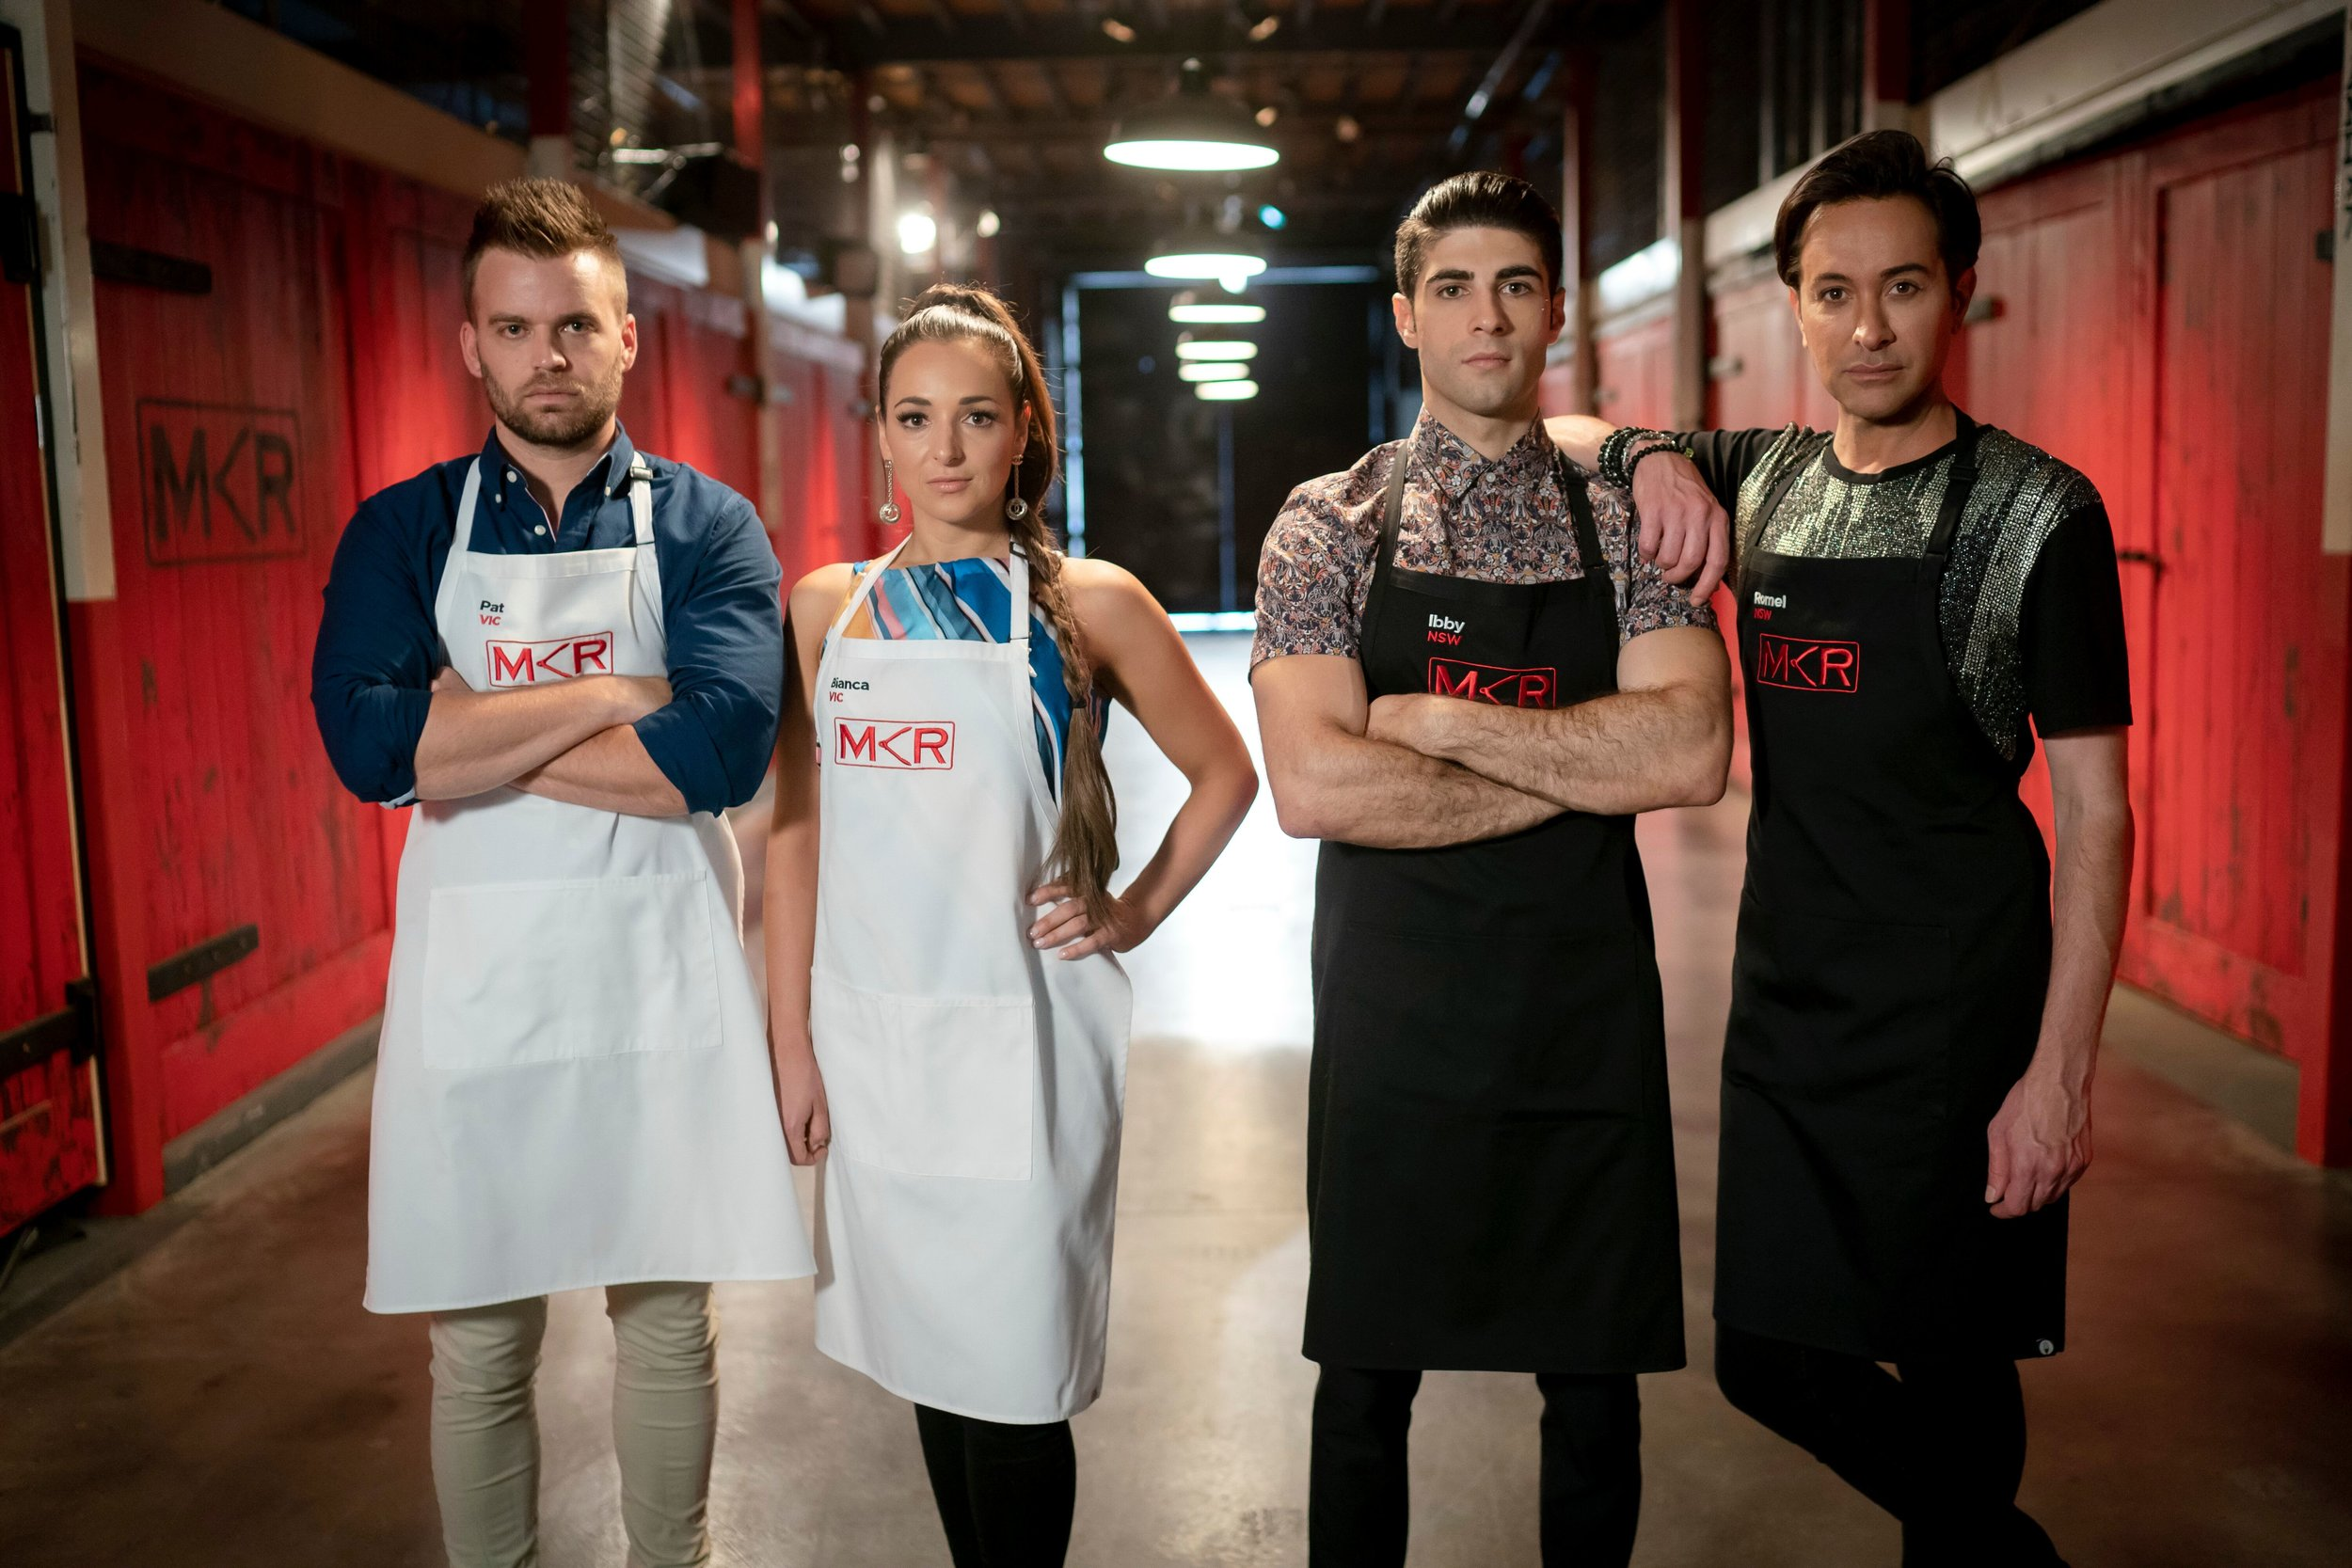 Who is the winner of my kitchen rules 2019